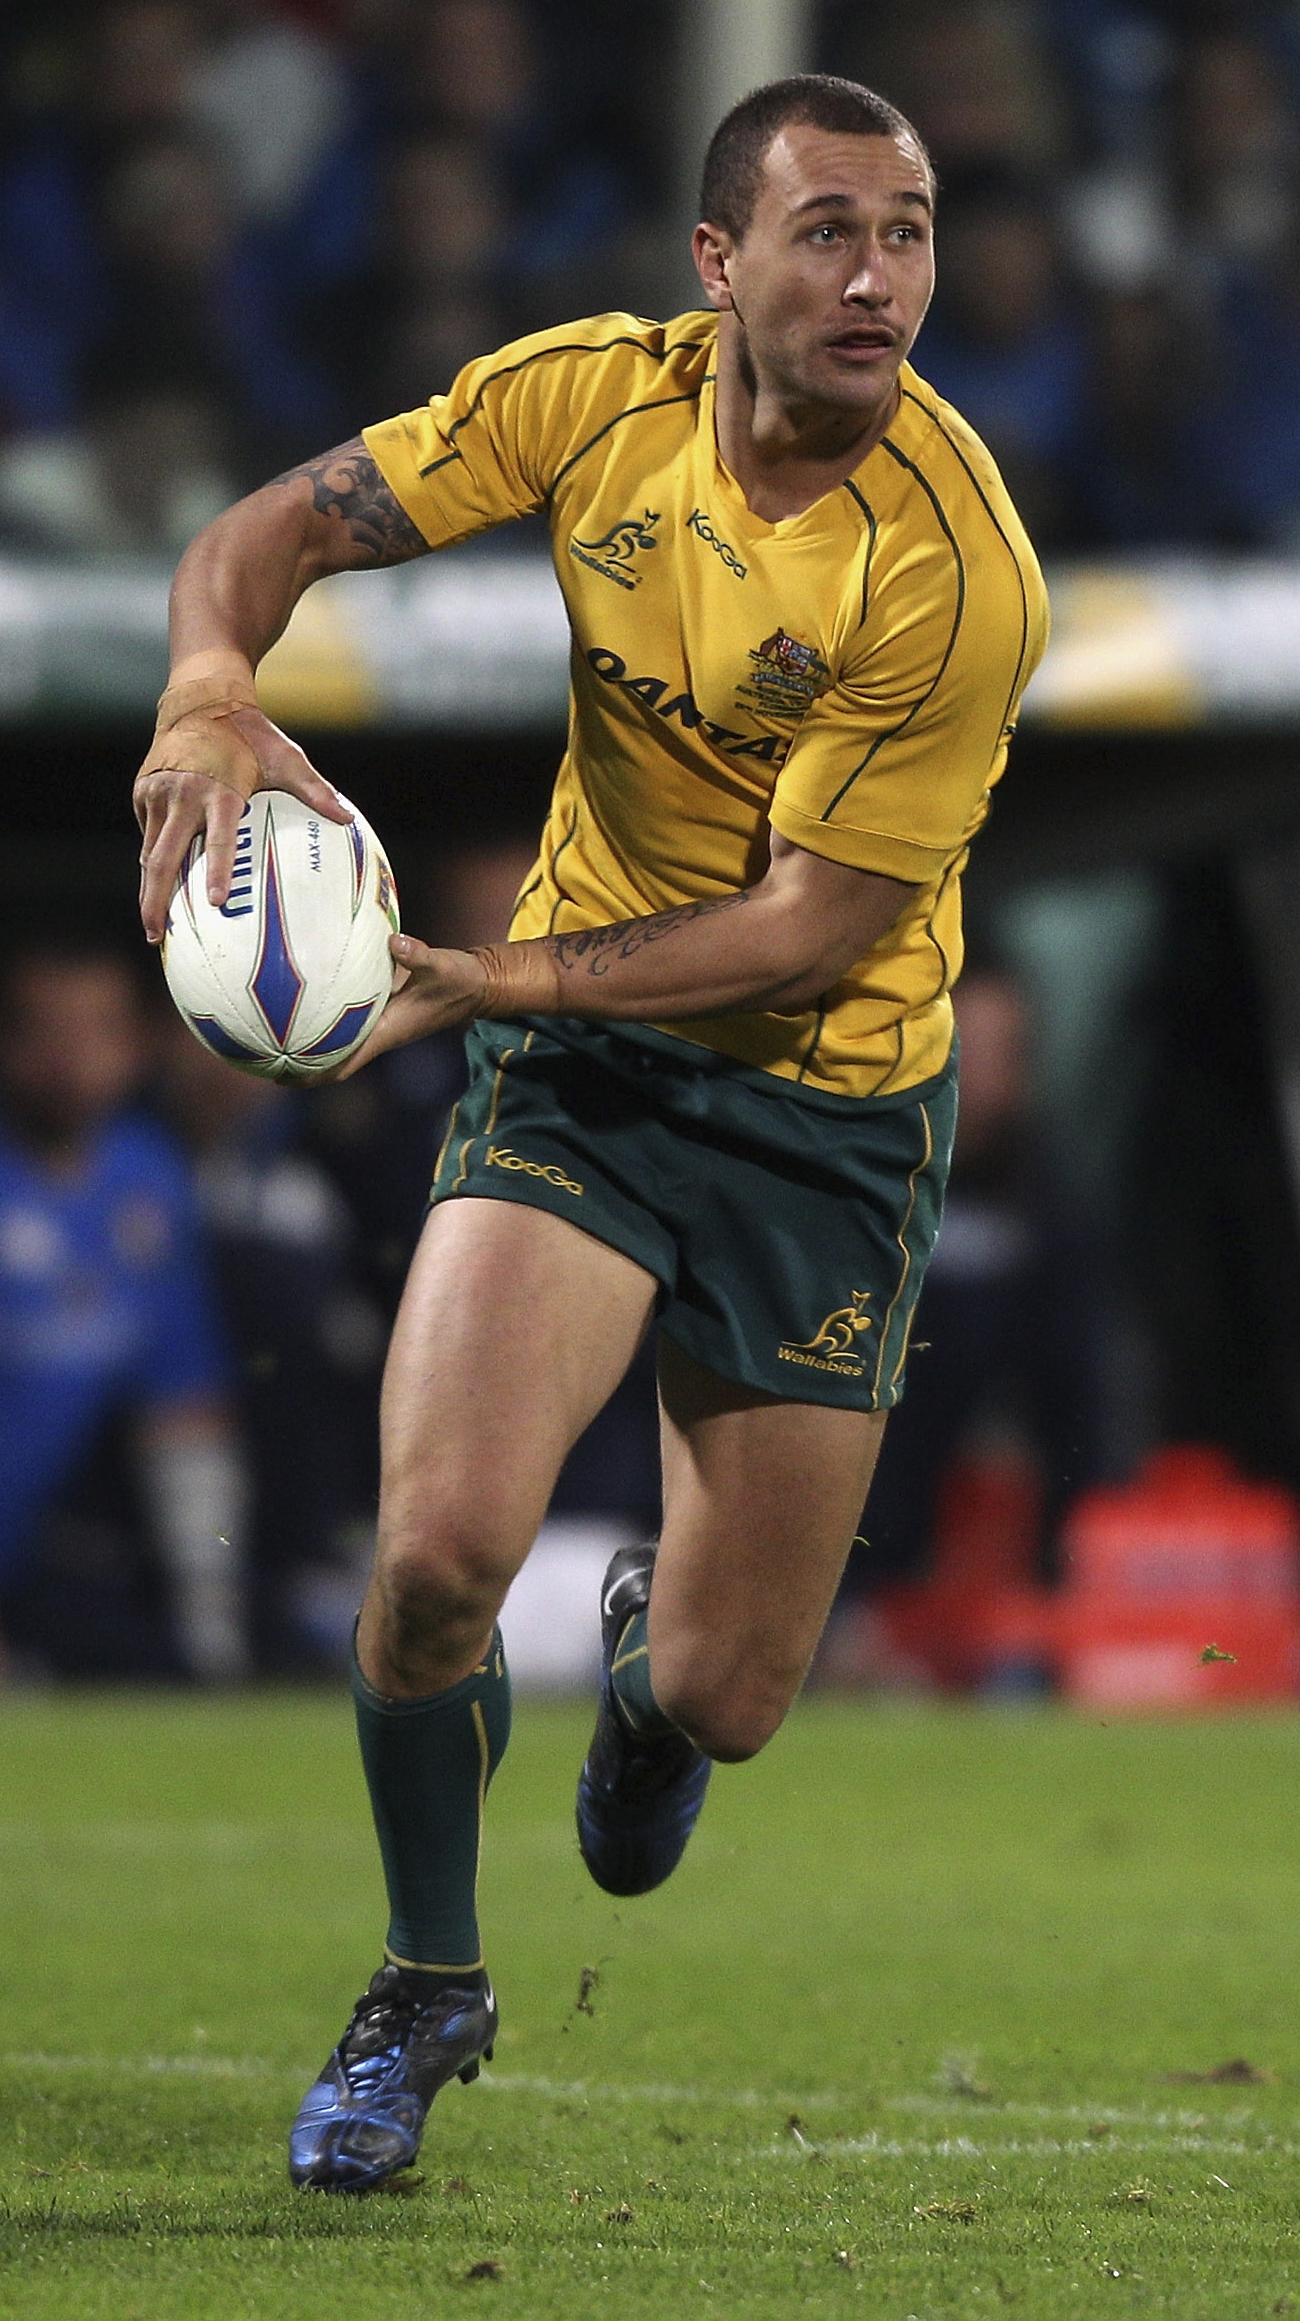 Rugby World Cup 2011: Australia's Young Guns - Rugby World